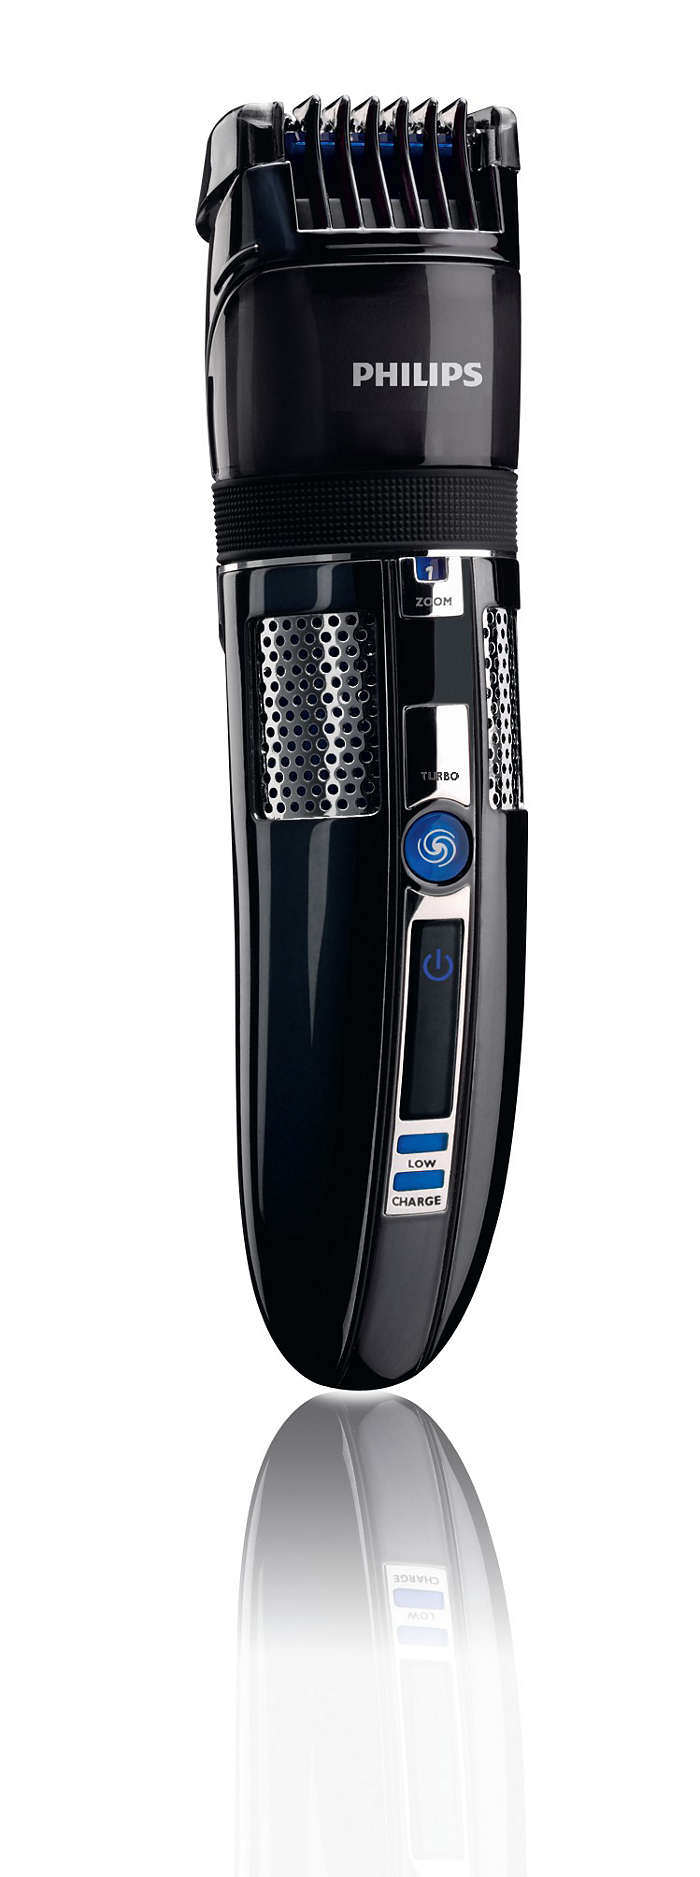 philips precision perfect trimmer instructions